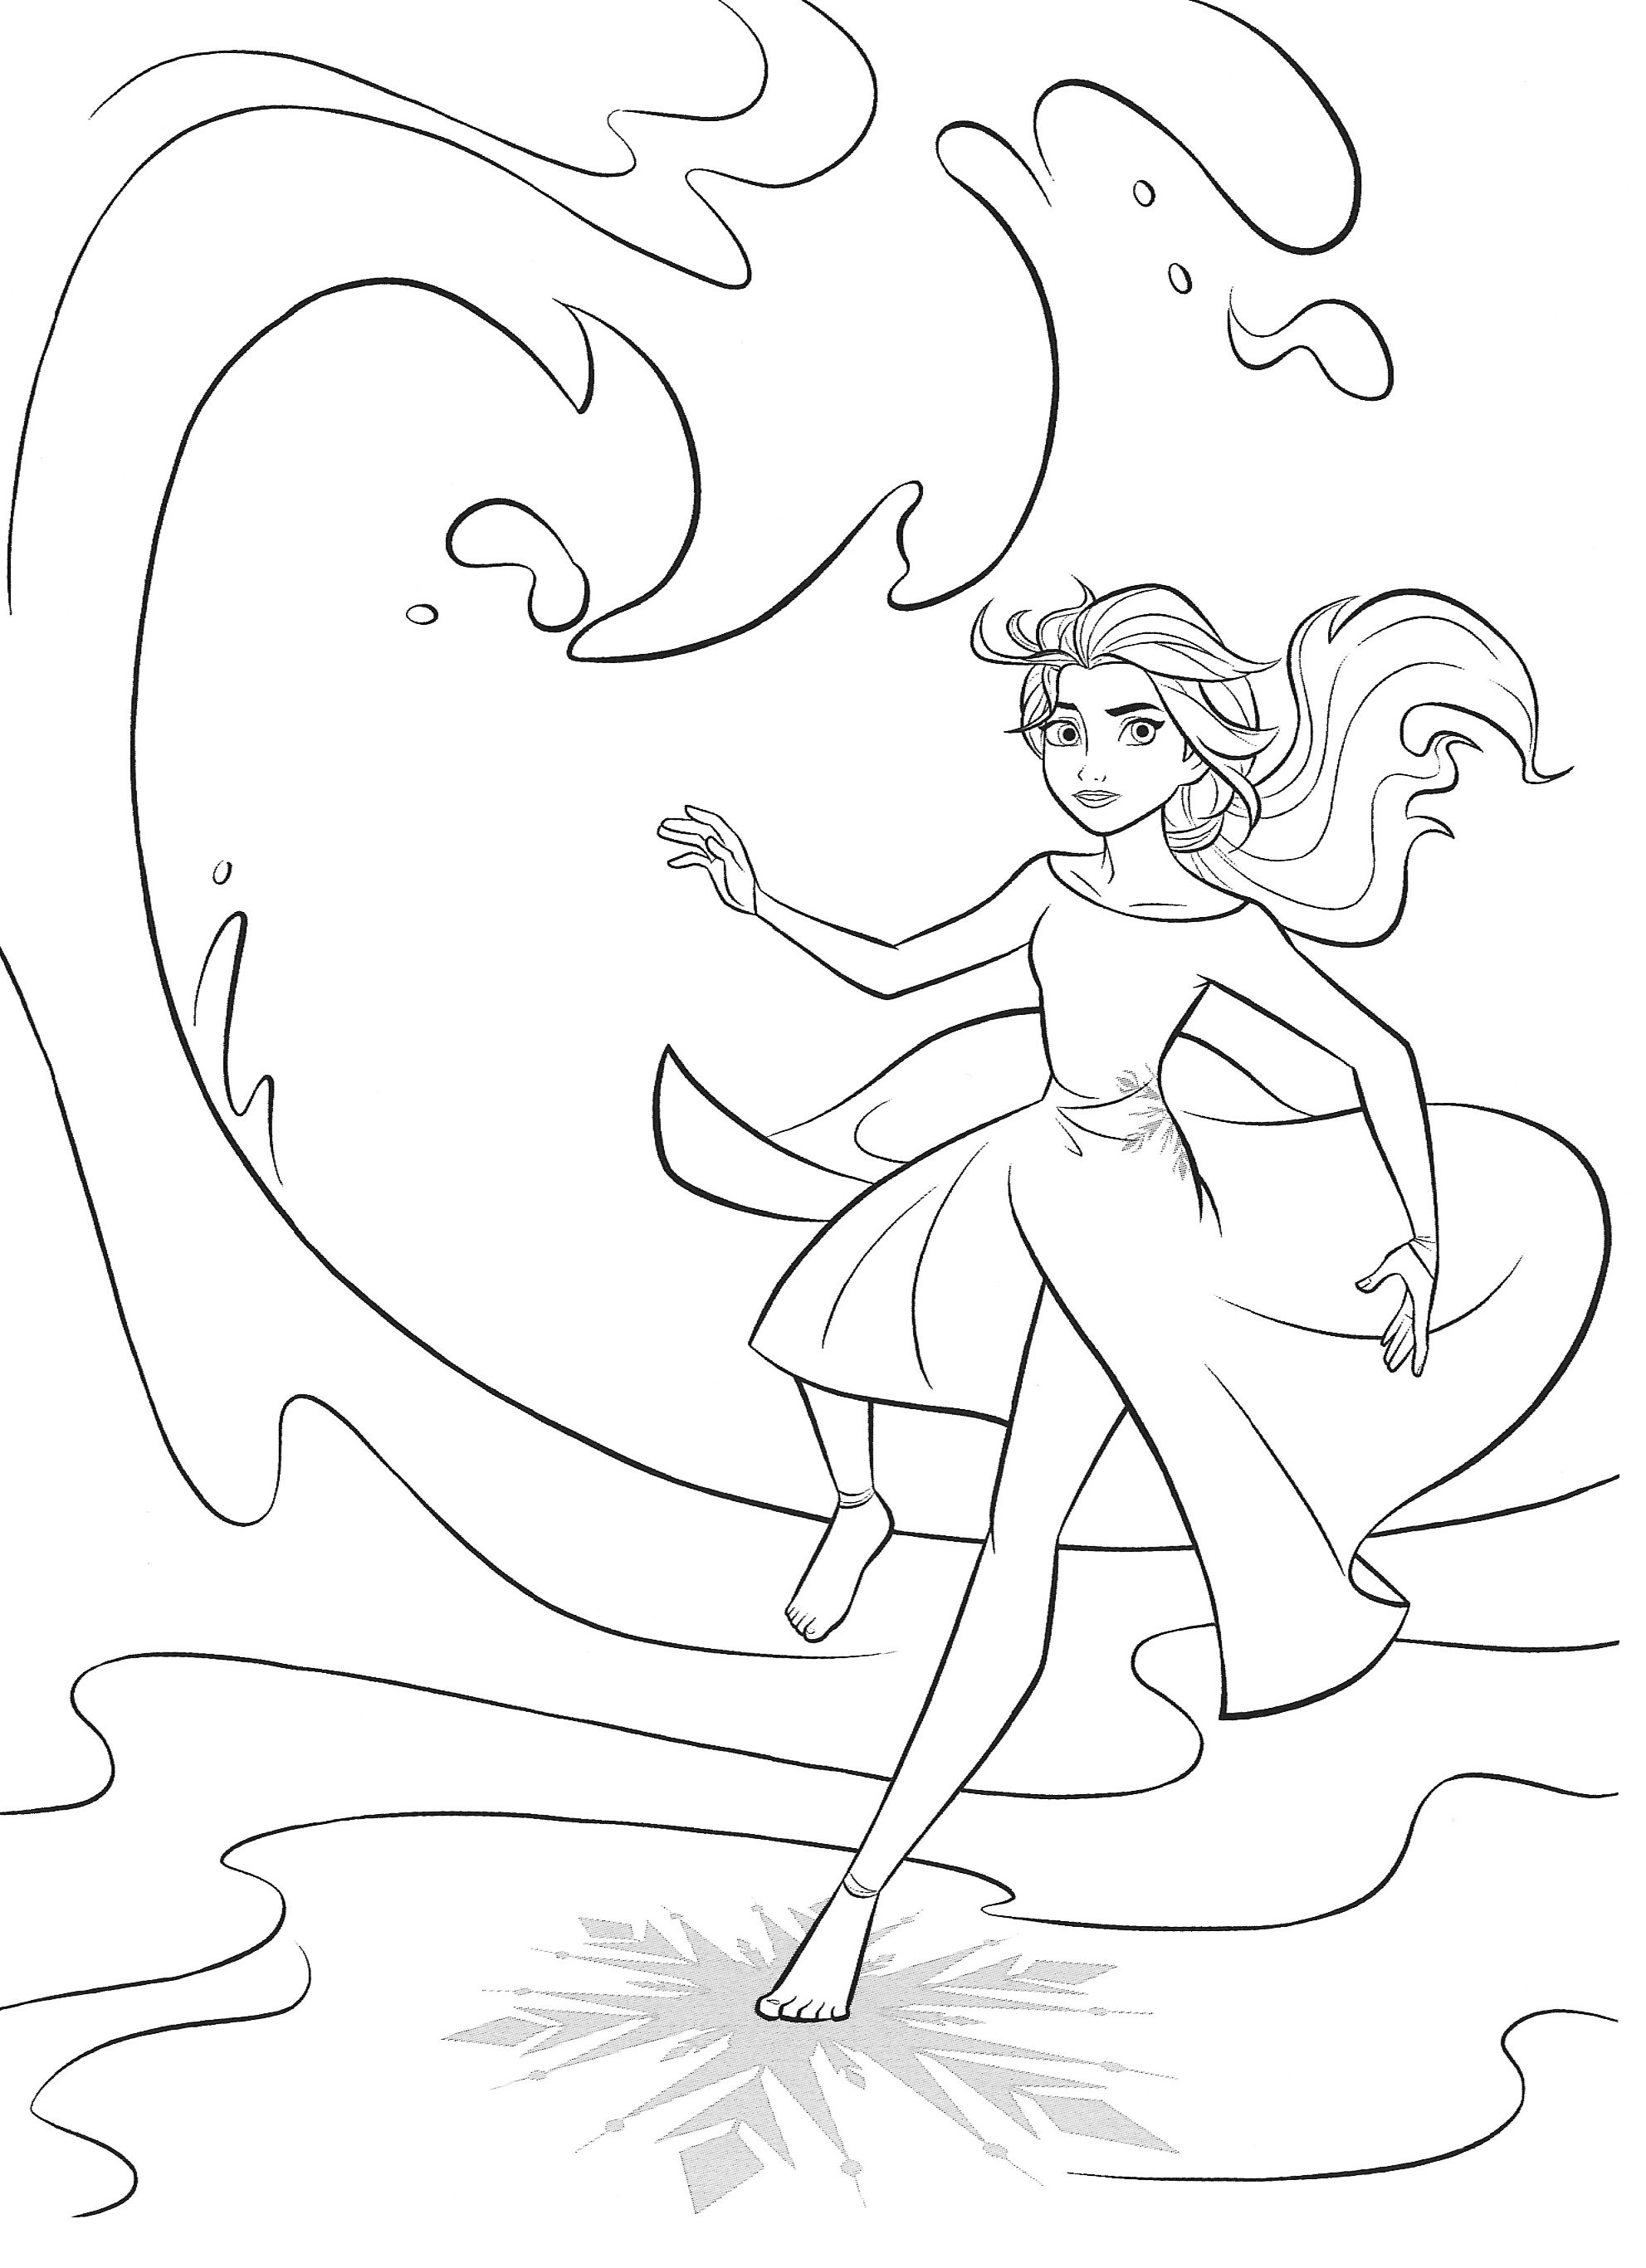 Coloring Pages For Kids Disney Frozen 2 Bruni